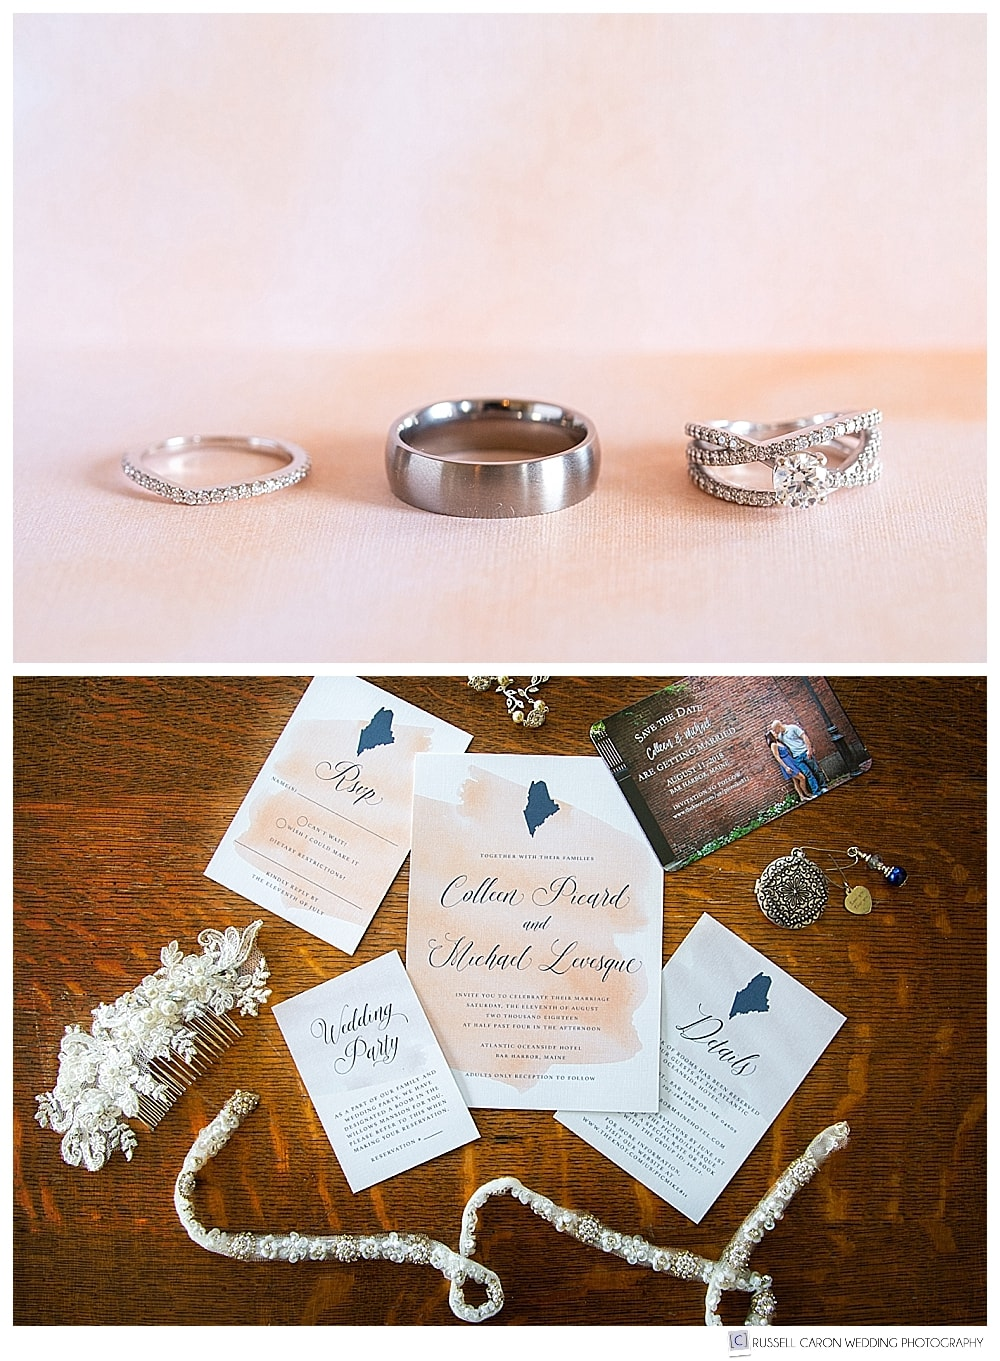 wedding ring photos, and paper suite photos on wedding day